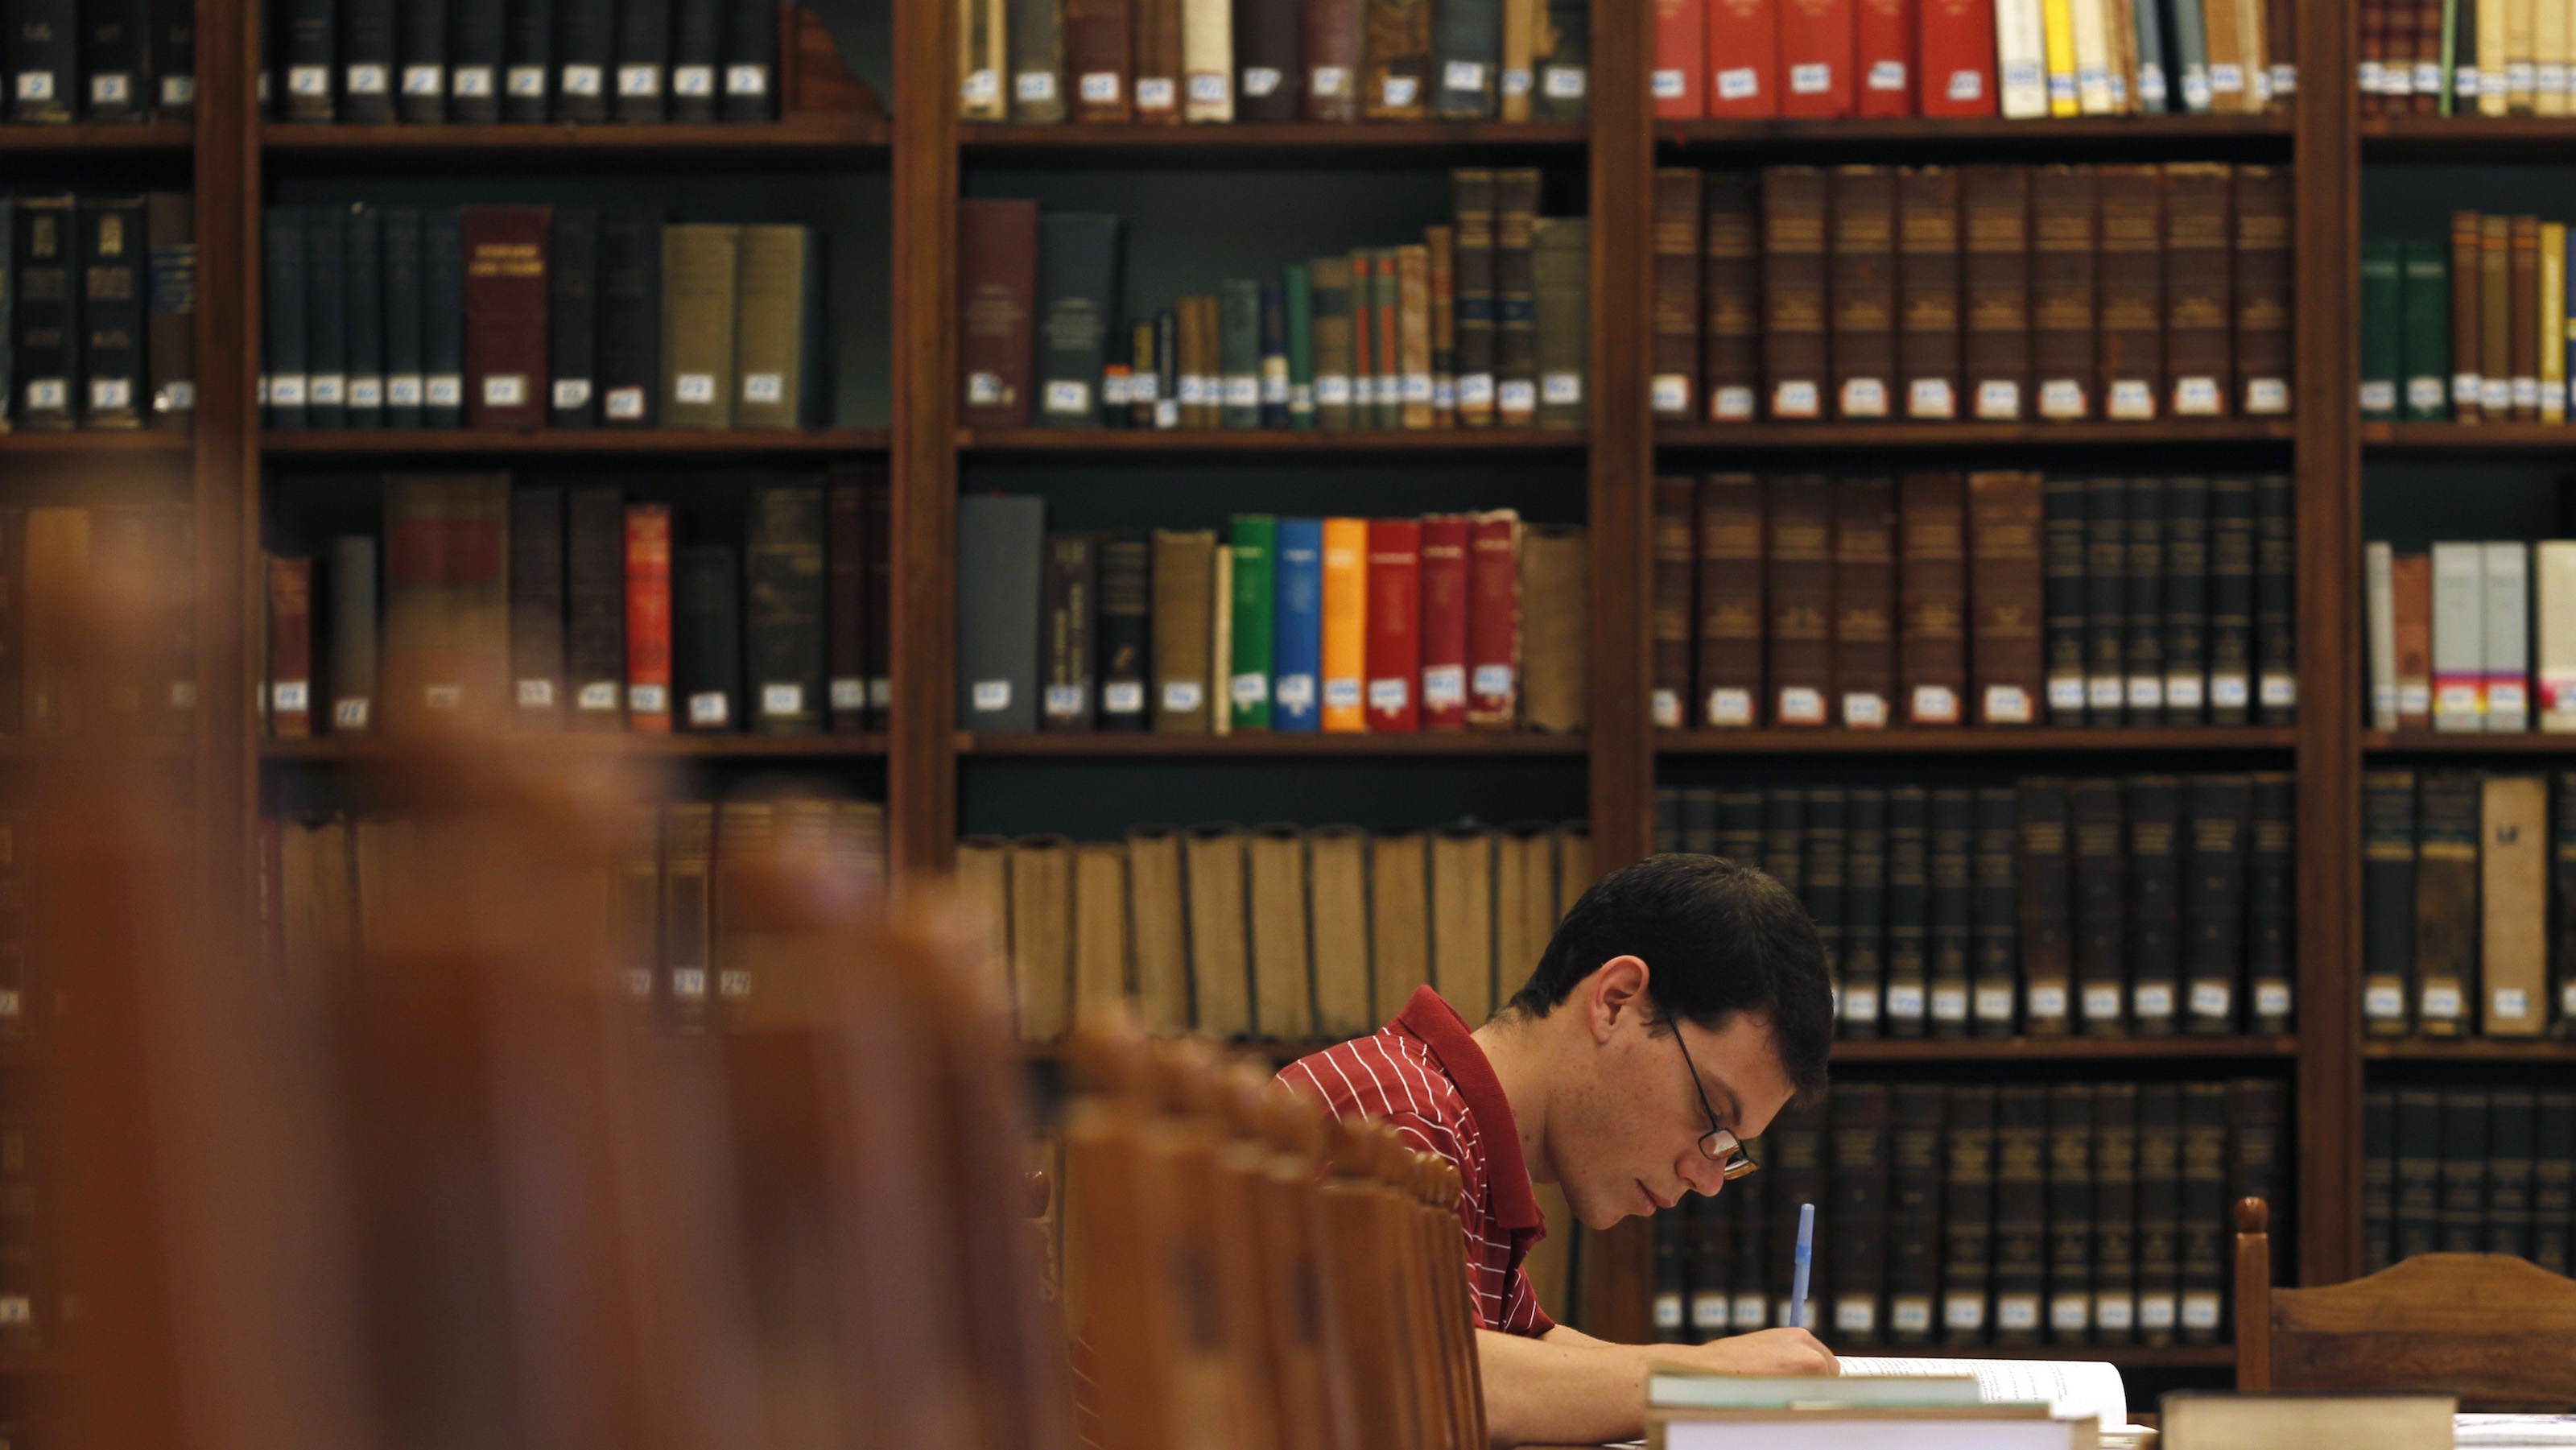 A seminarian writes in the library of the San Carlos and San Ambrosio Seminary in Havana February 23, 2012. The new Catholic seminary is the only existing seminary in Cuba. REUTERS/Enrique de la Osa (CUBA - Tags: RELIGION SOCIETY EDUCATION) - RTR2YCGF